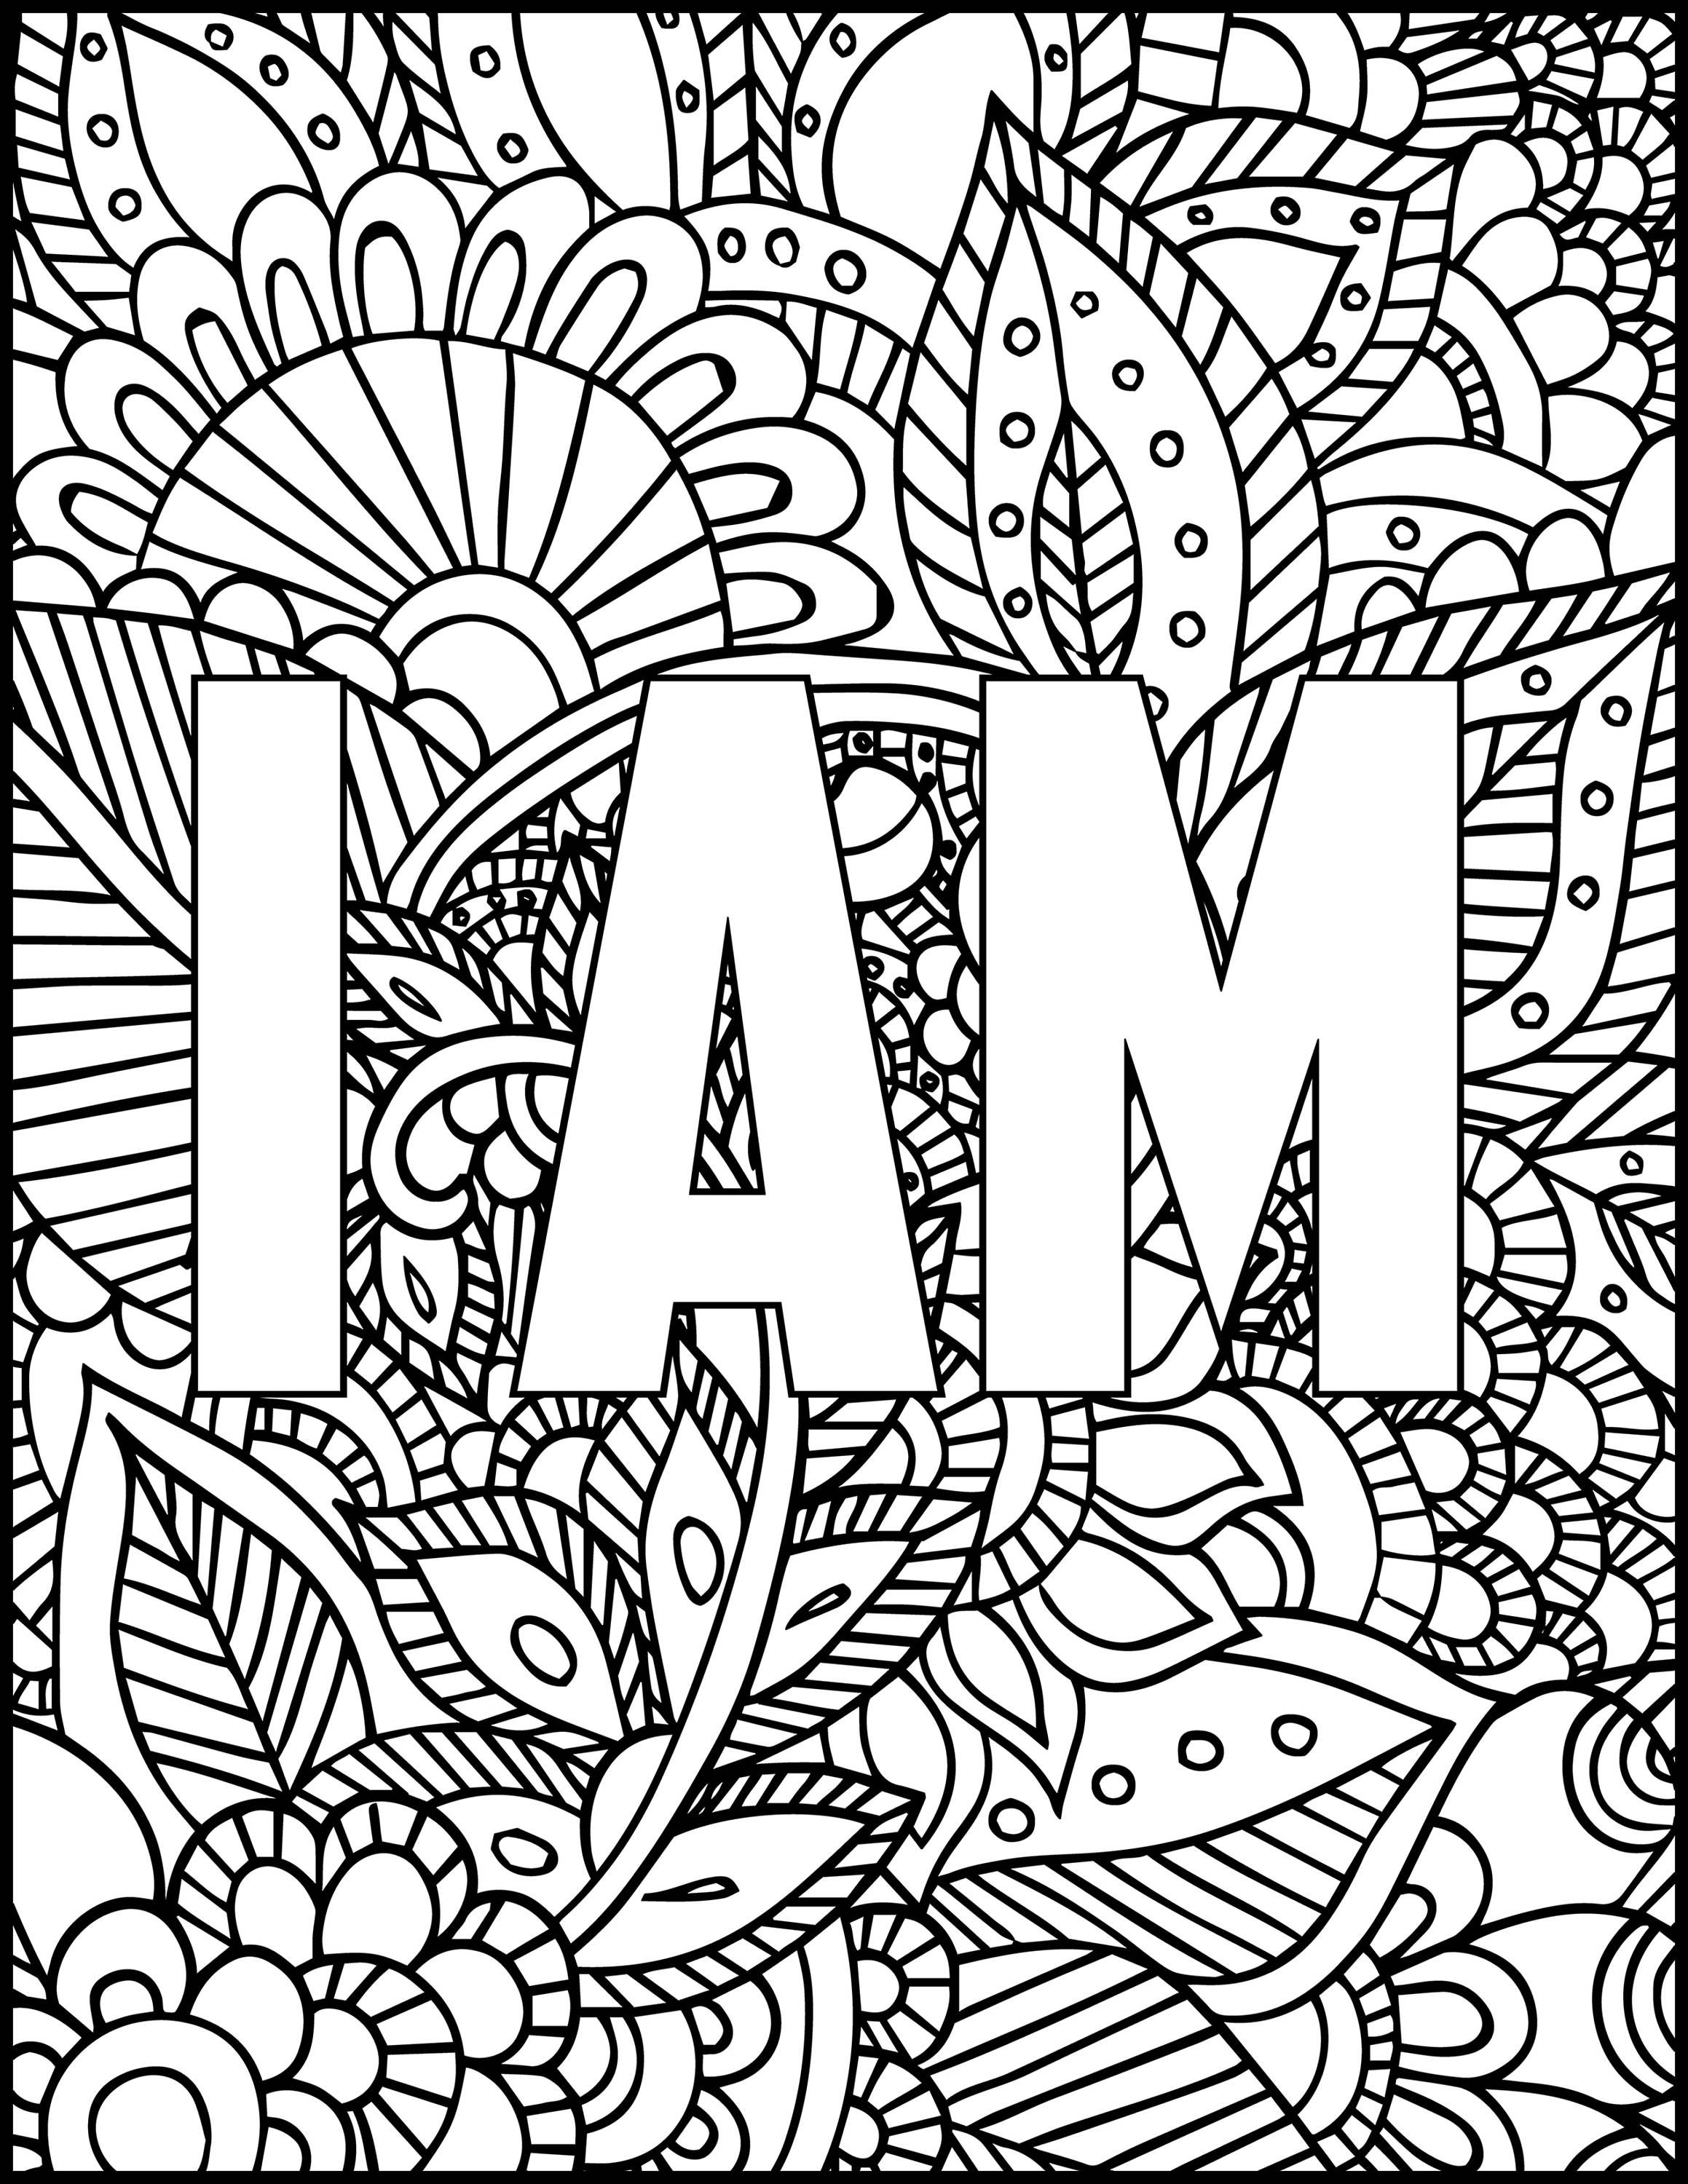 5 Printable Coloring Pages I Am Coloring Bundle Coloring